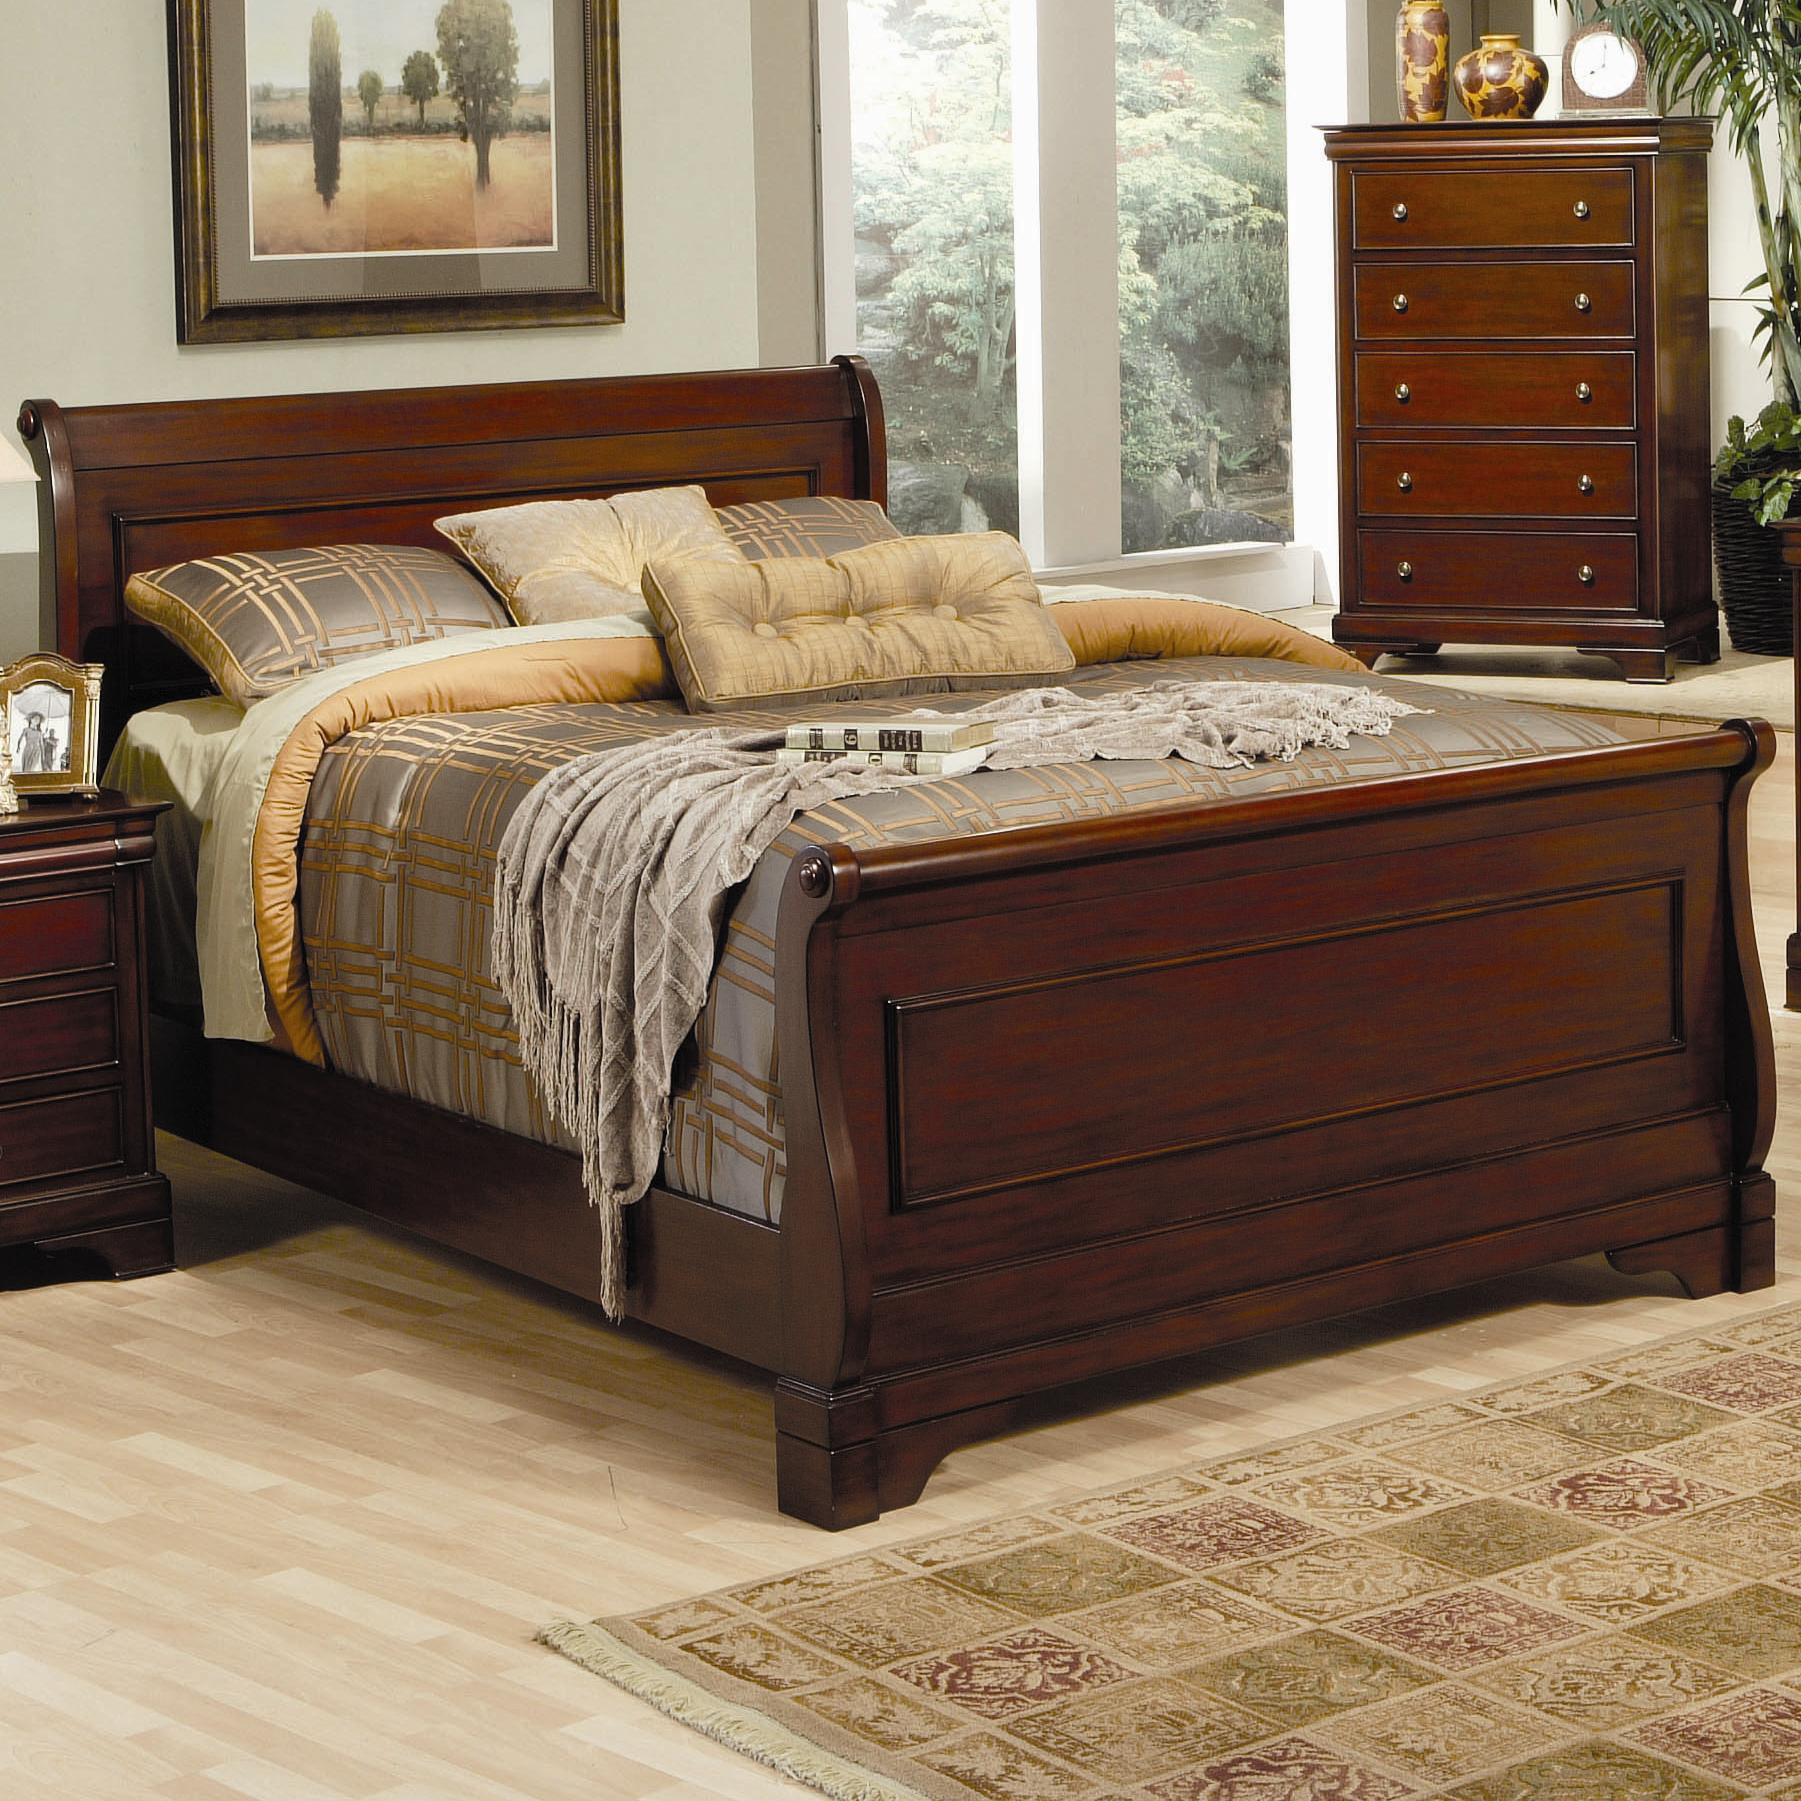 Versailles California King Sleigh Bed With Deep Mahogany Stain Quality Furniture At Affordable Prices In Philadelphia Main Line Pa